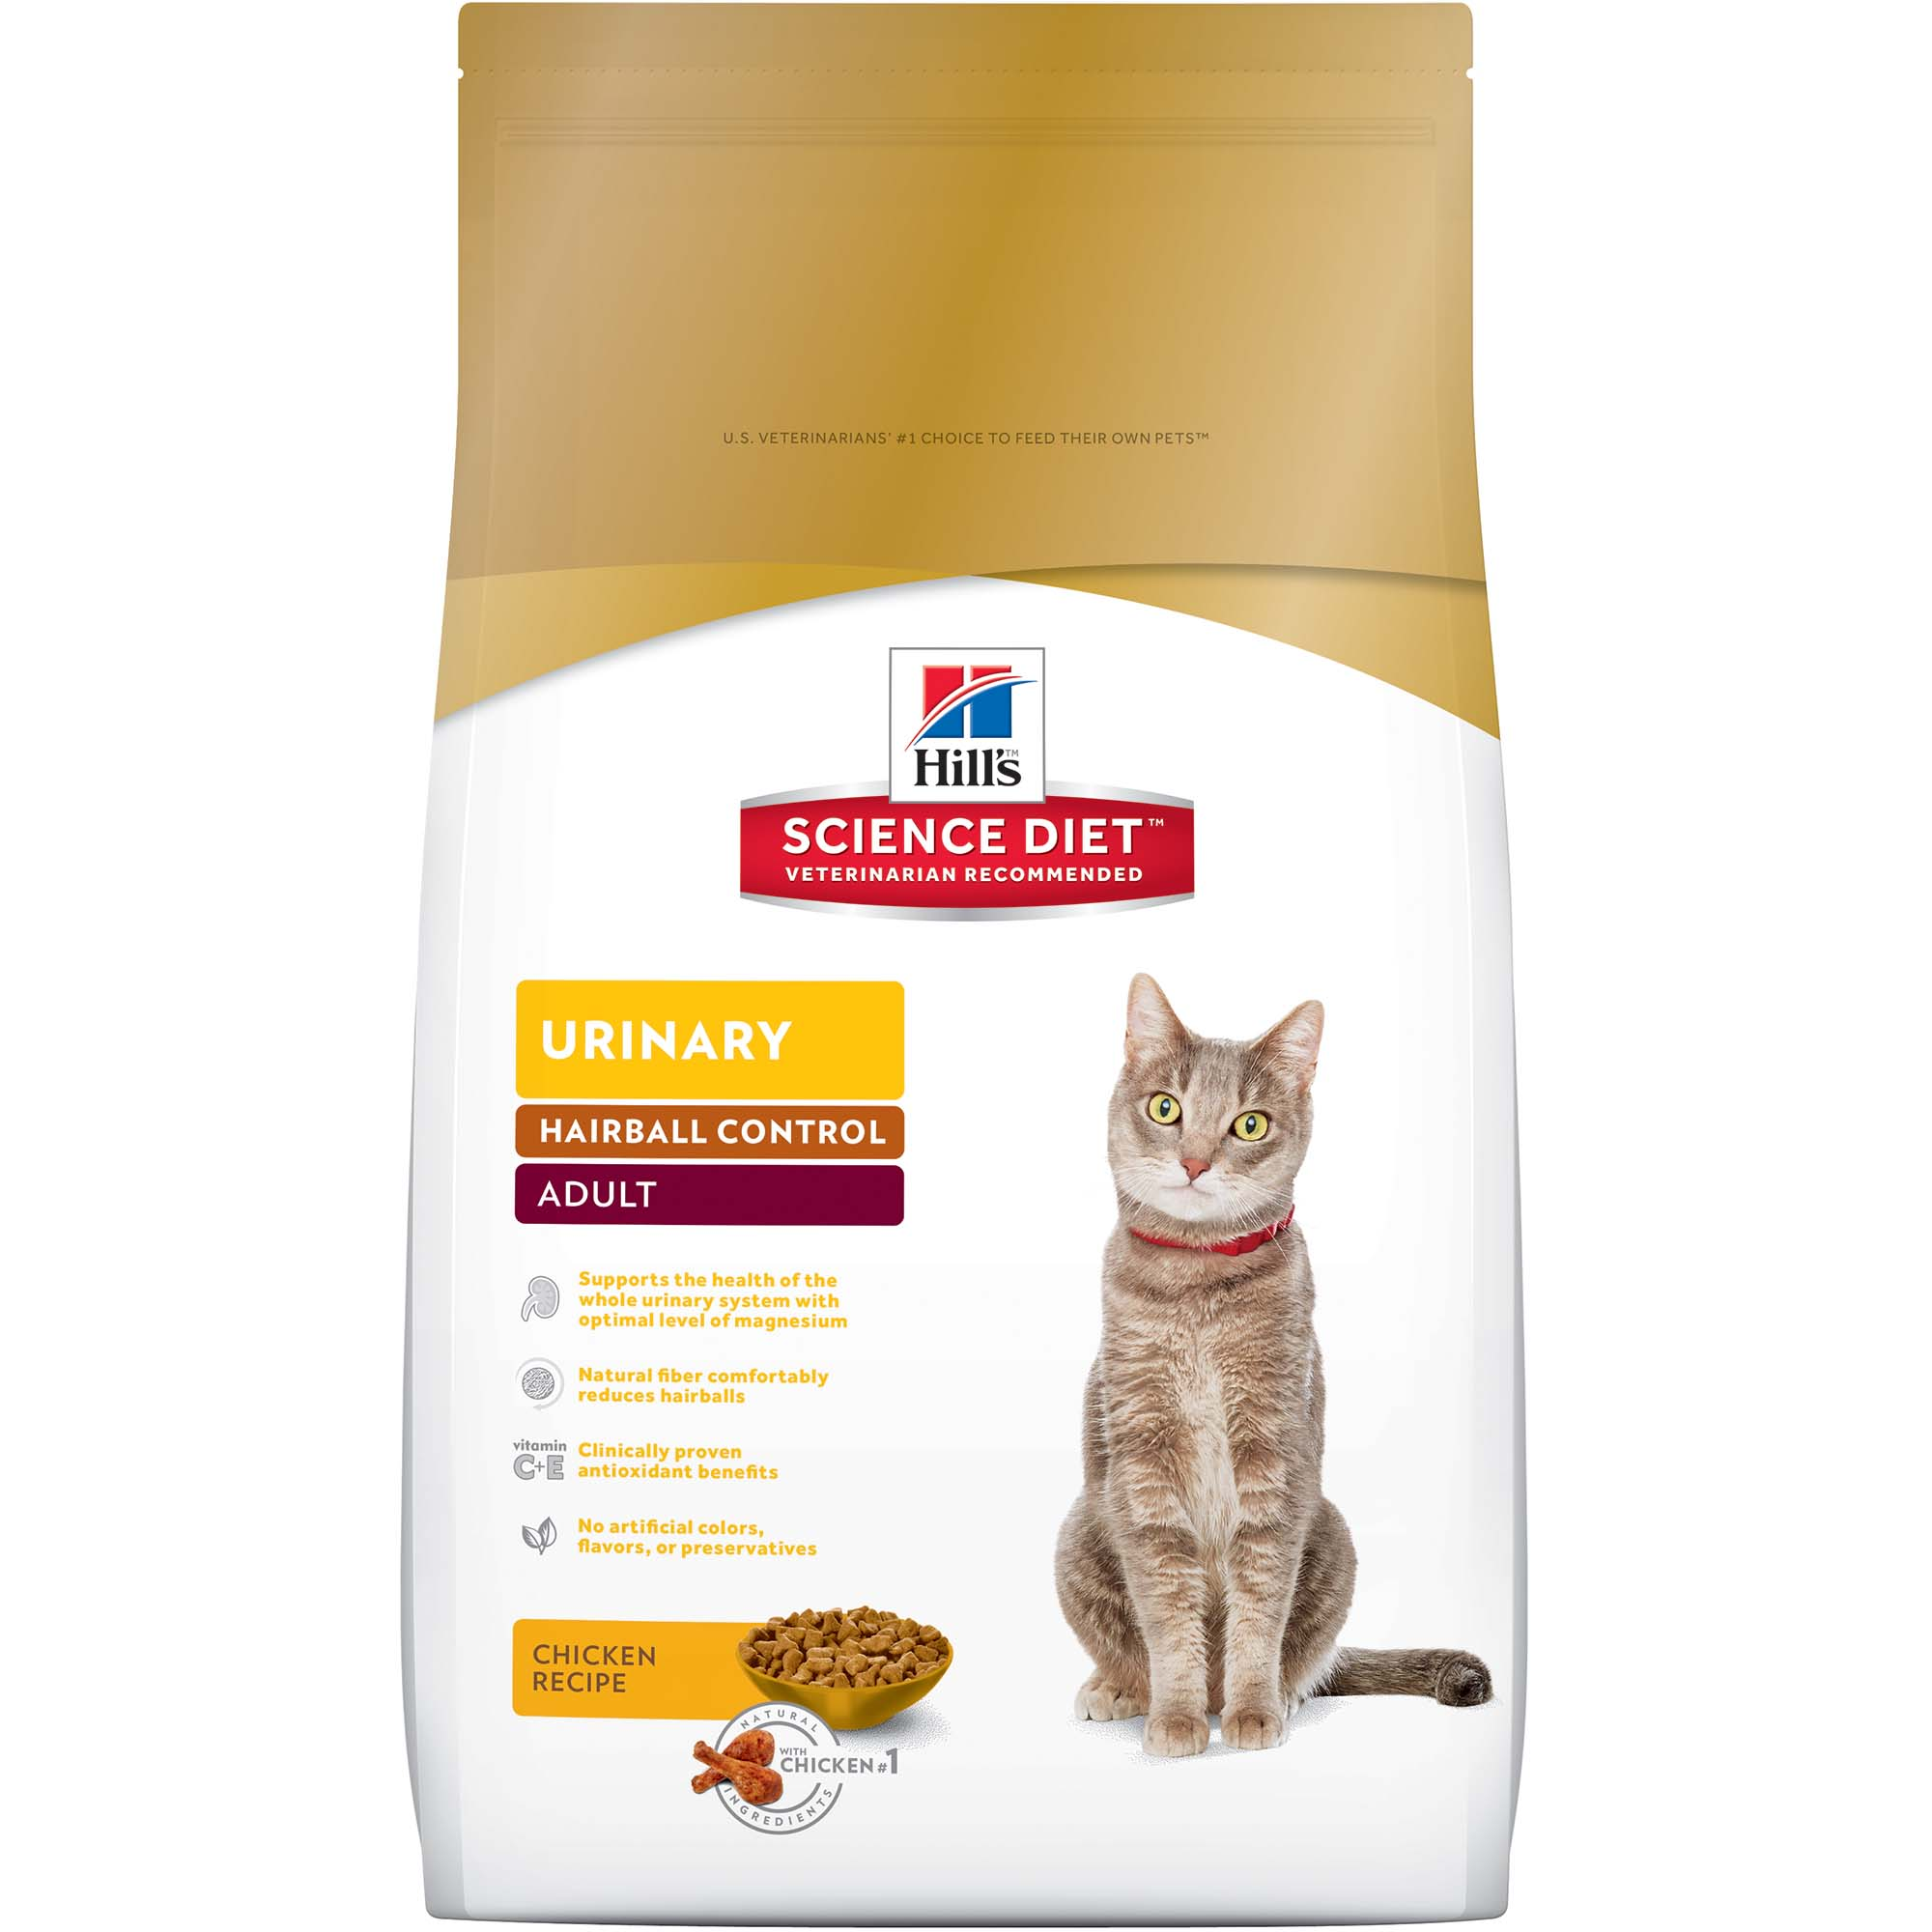 Hill's Science Diet (Get $5 back for every $20 spent) Adult Urinary & Hairball Control Chicken Recipe Dry Cat... by Hill's Pet Nutrition